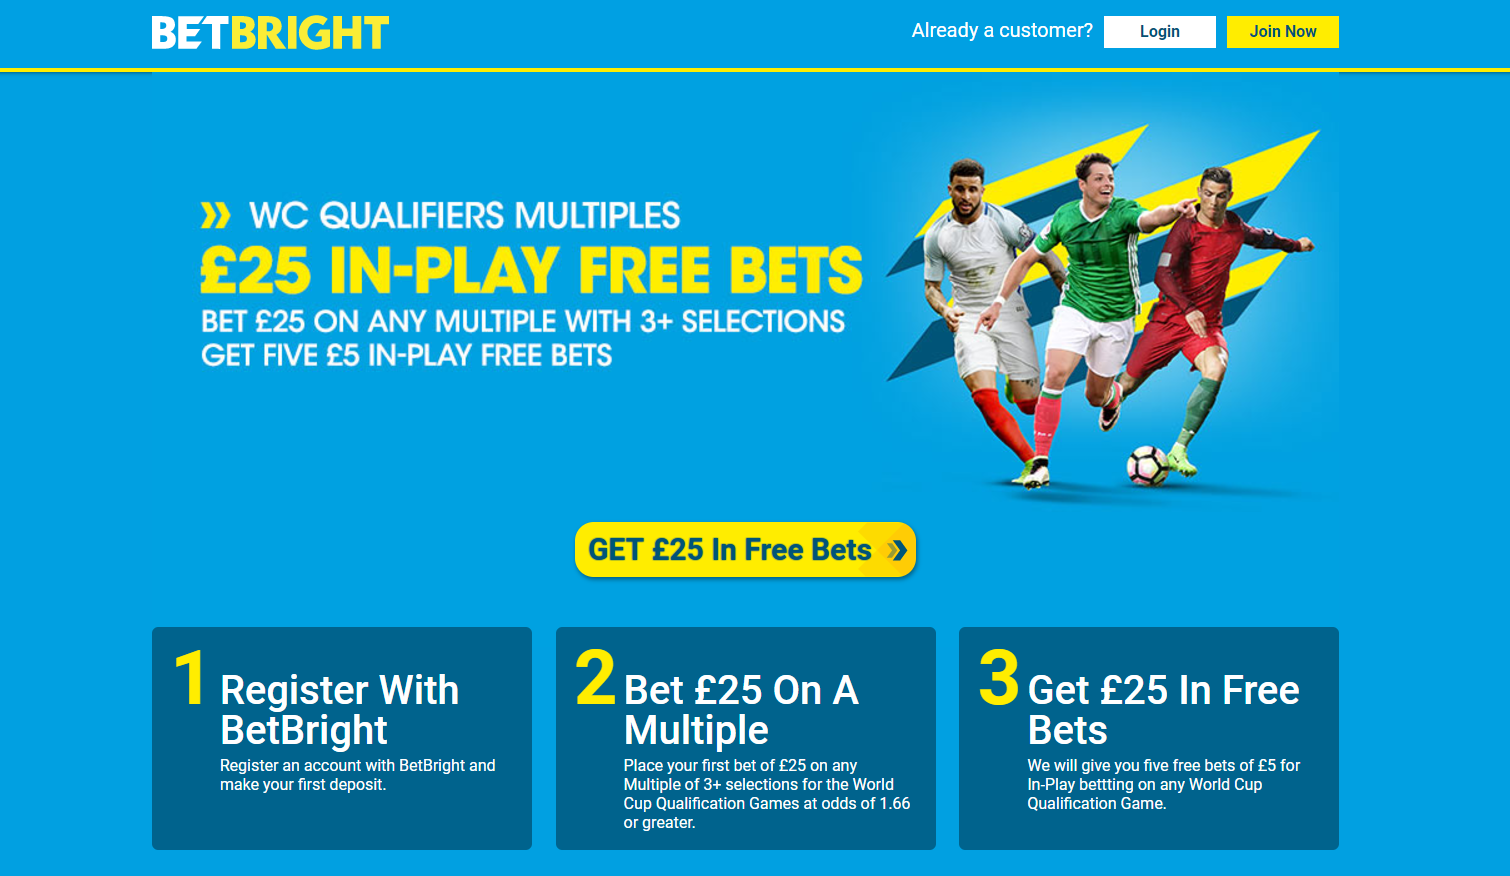 World Cup Qualifier Free bets